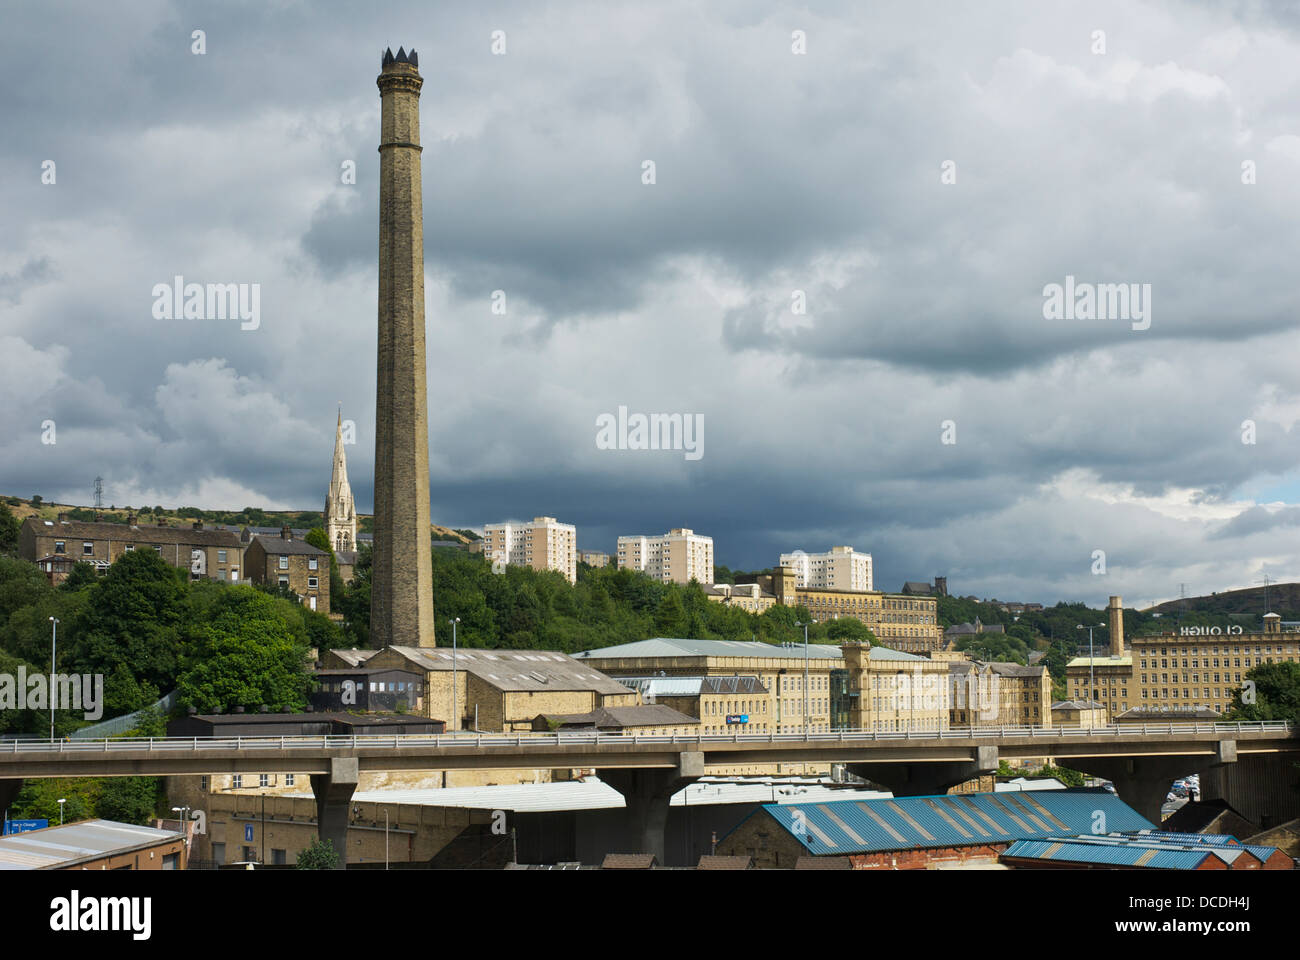 The skyline of Halifax, West Yorkshire, England, UK, with mill chimney and Burdock Way flyover - Stock Image